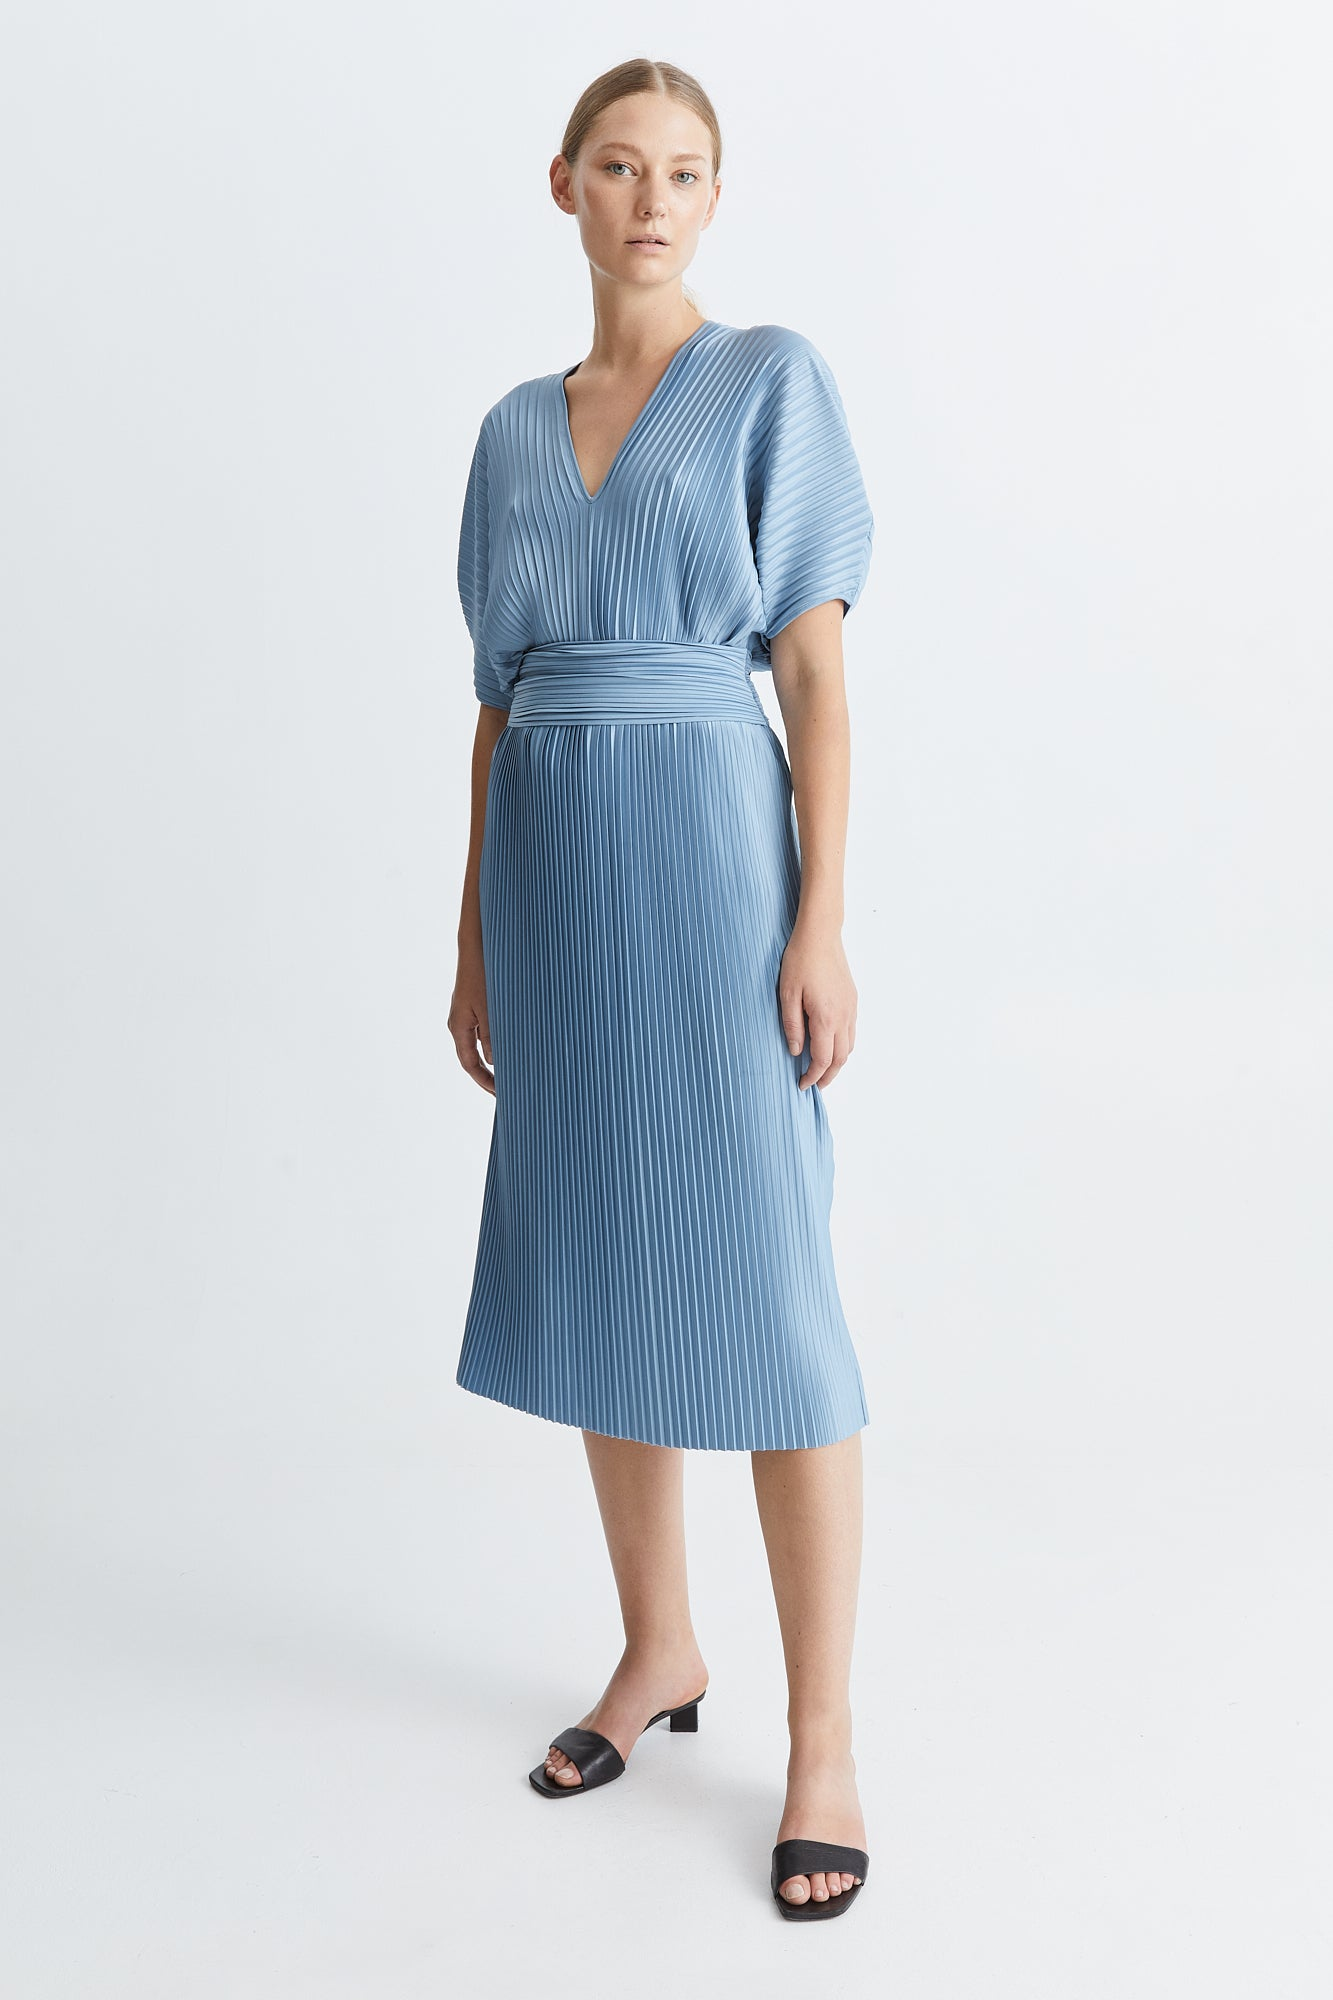 ITACHI DRESS - LIGHT BLUE